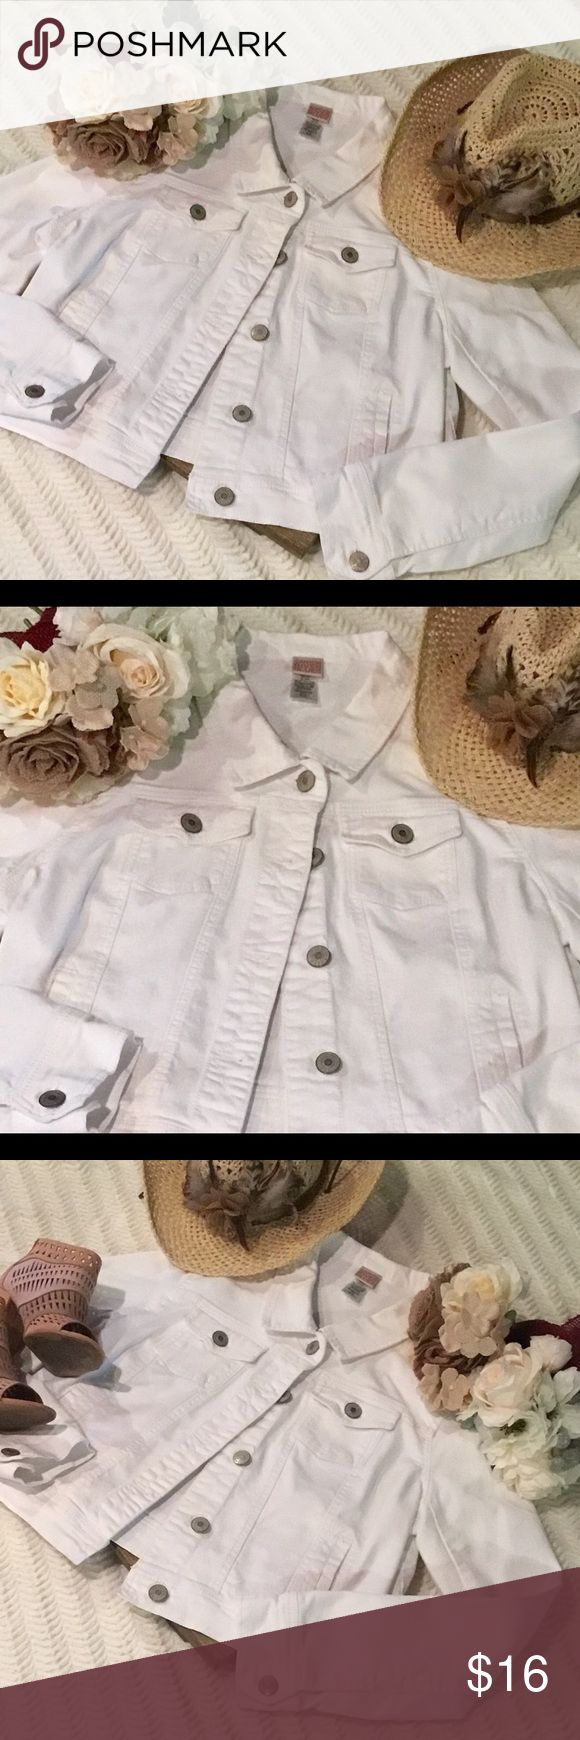 Canyon River Blues Denim Jacket White Denim 2 Front Pockets and 2 Slide Pockets 🌷Silver Buttons 🌻Adjustable in the back of the Jacket. Gently Used🌷 Canyon River Blues Jackets & Coats Jean Jackets